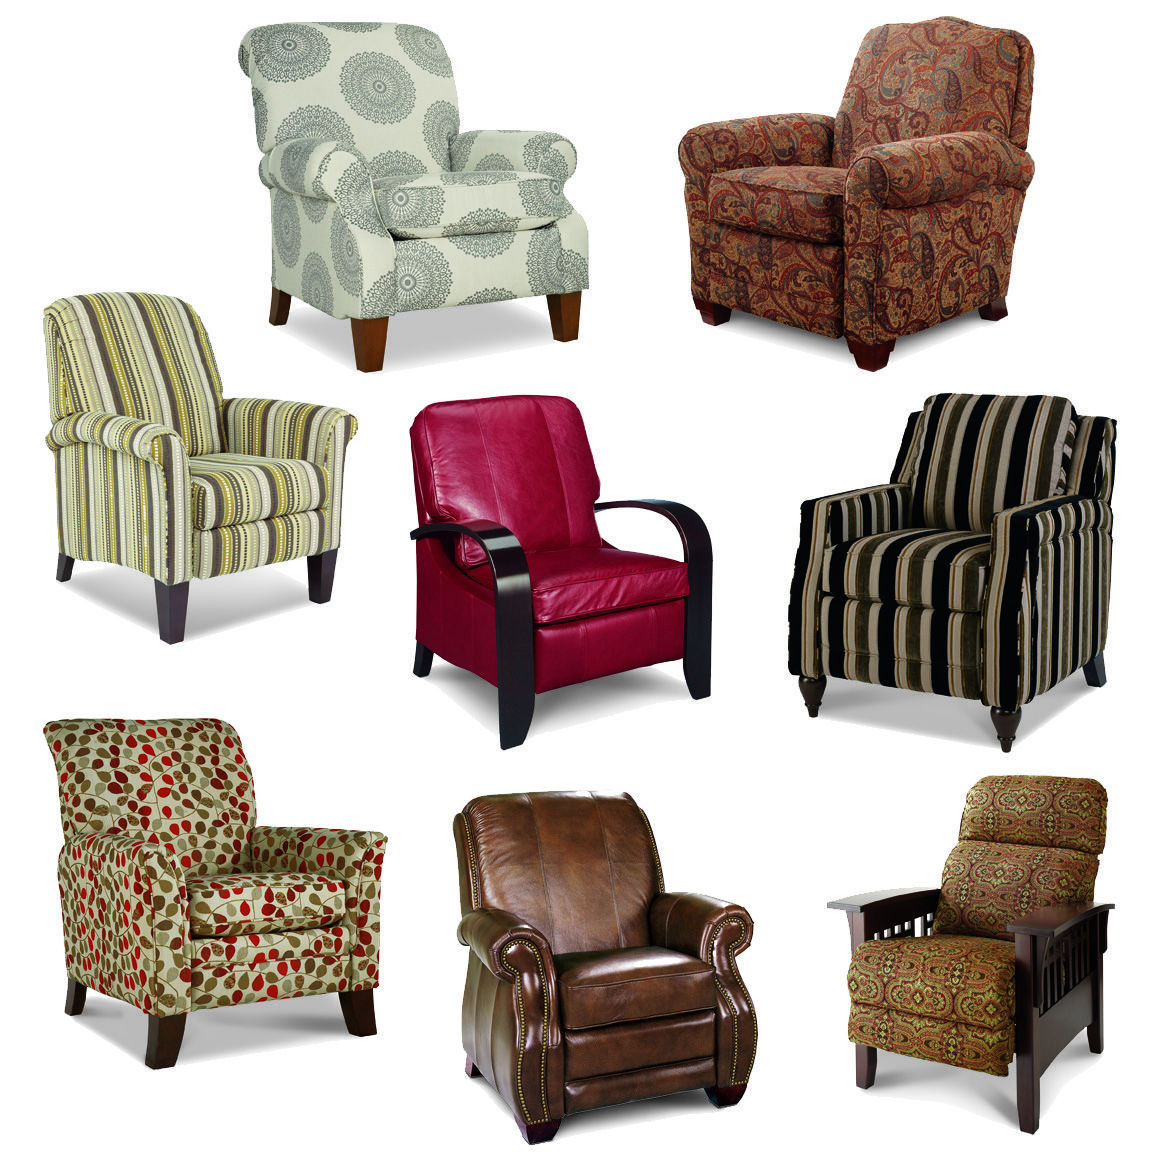 Pretty_little_recliners_designer_choice_collage (2